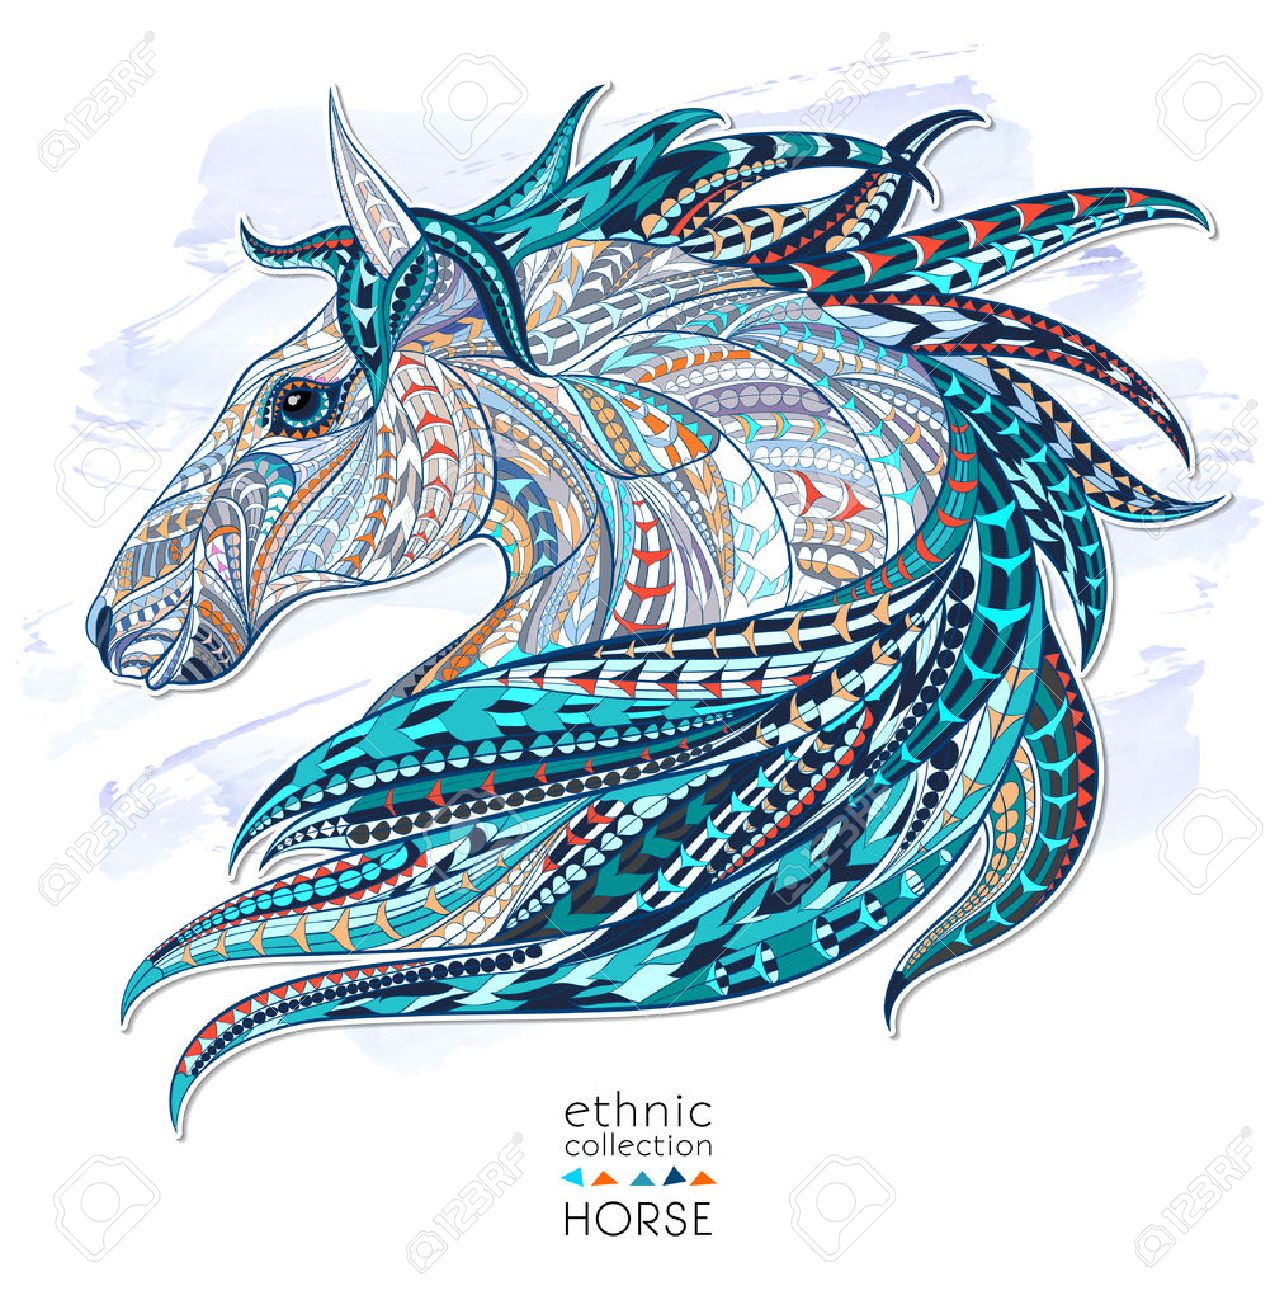 Patterned Head Of The Horse On The Grunge Background African Royalty Free Cliparts Vectors And Stock Illustration Image 44180756